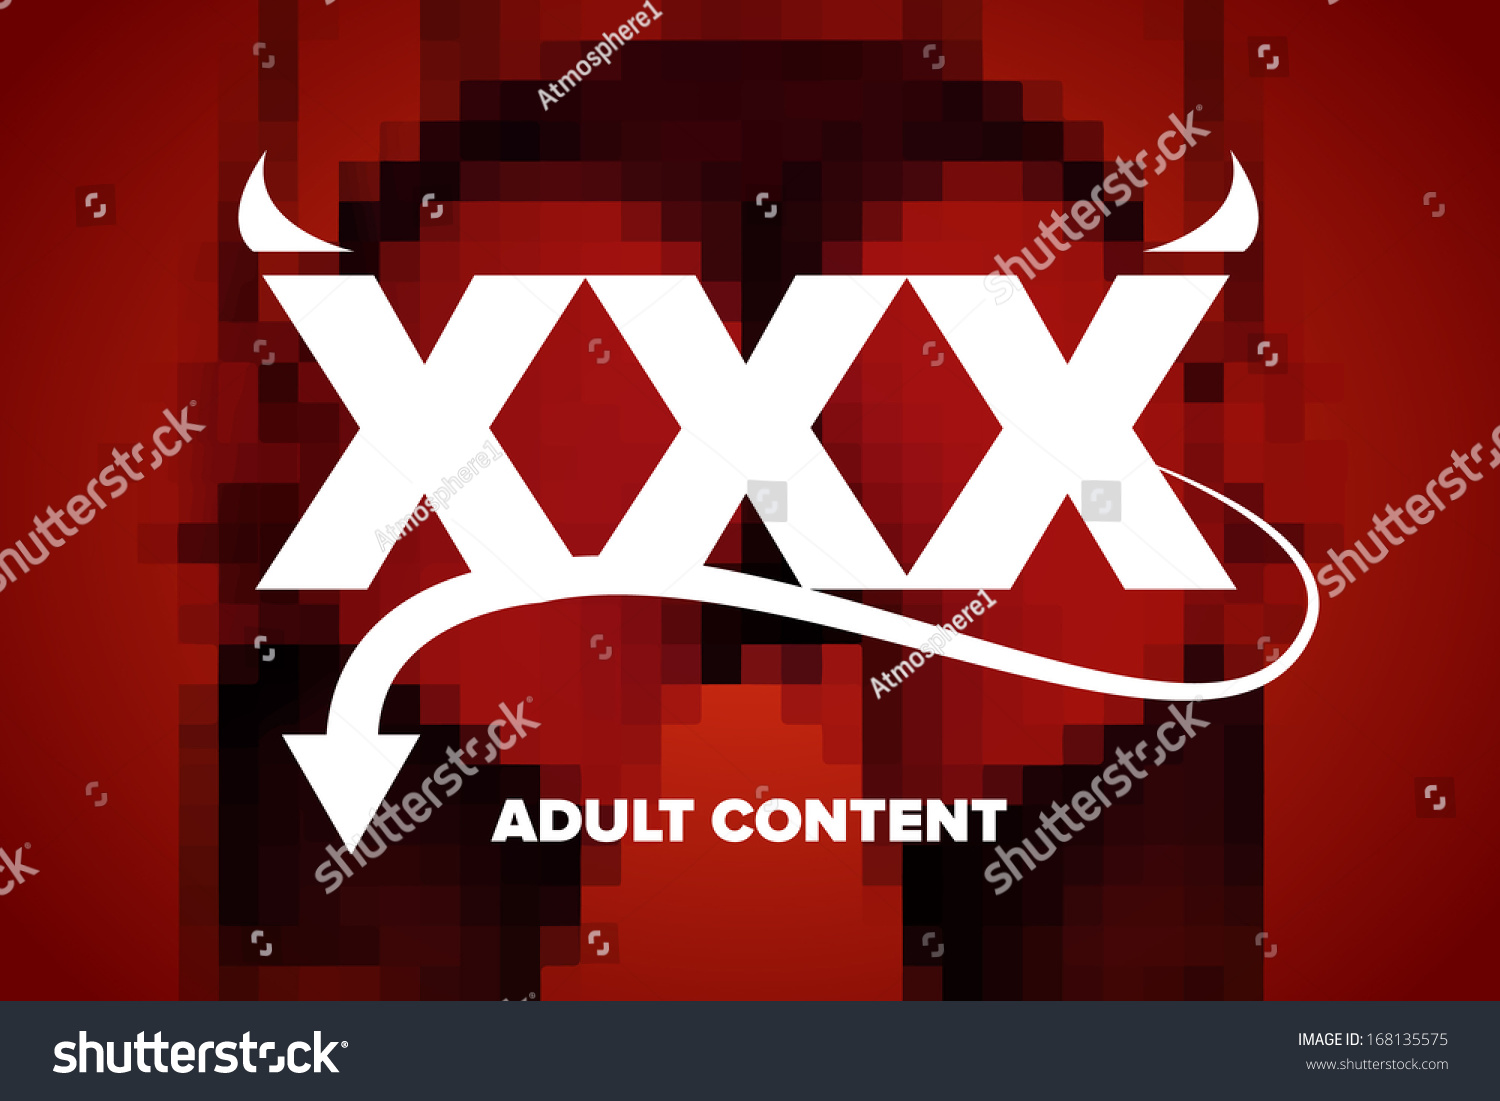 Adult Image Xxx xxx sexy adult content warning graphics stock vector